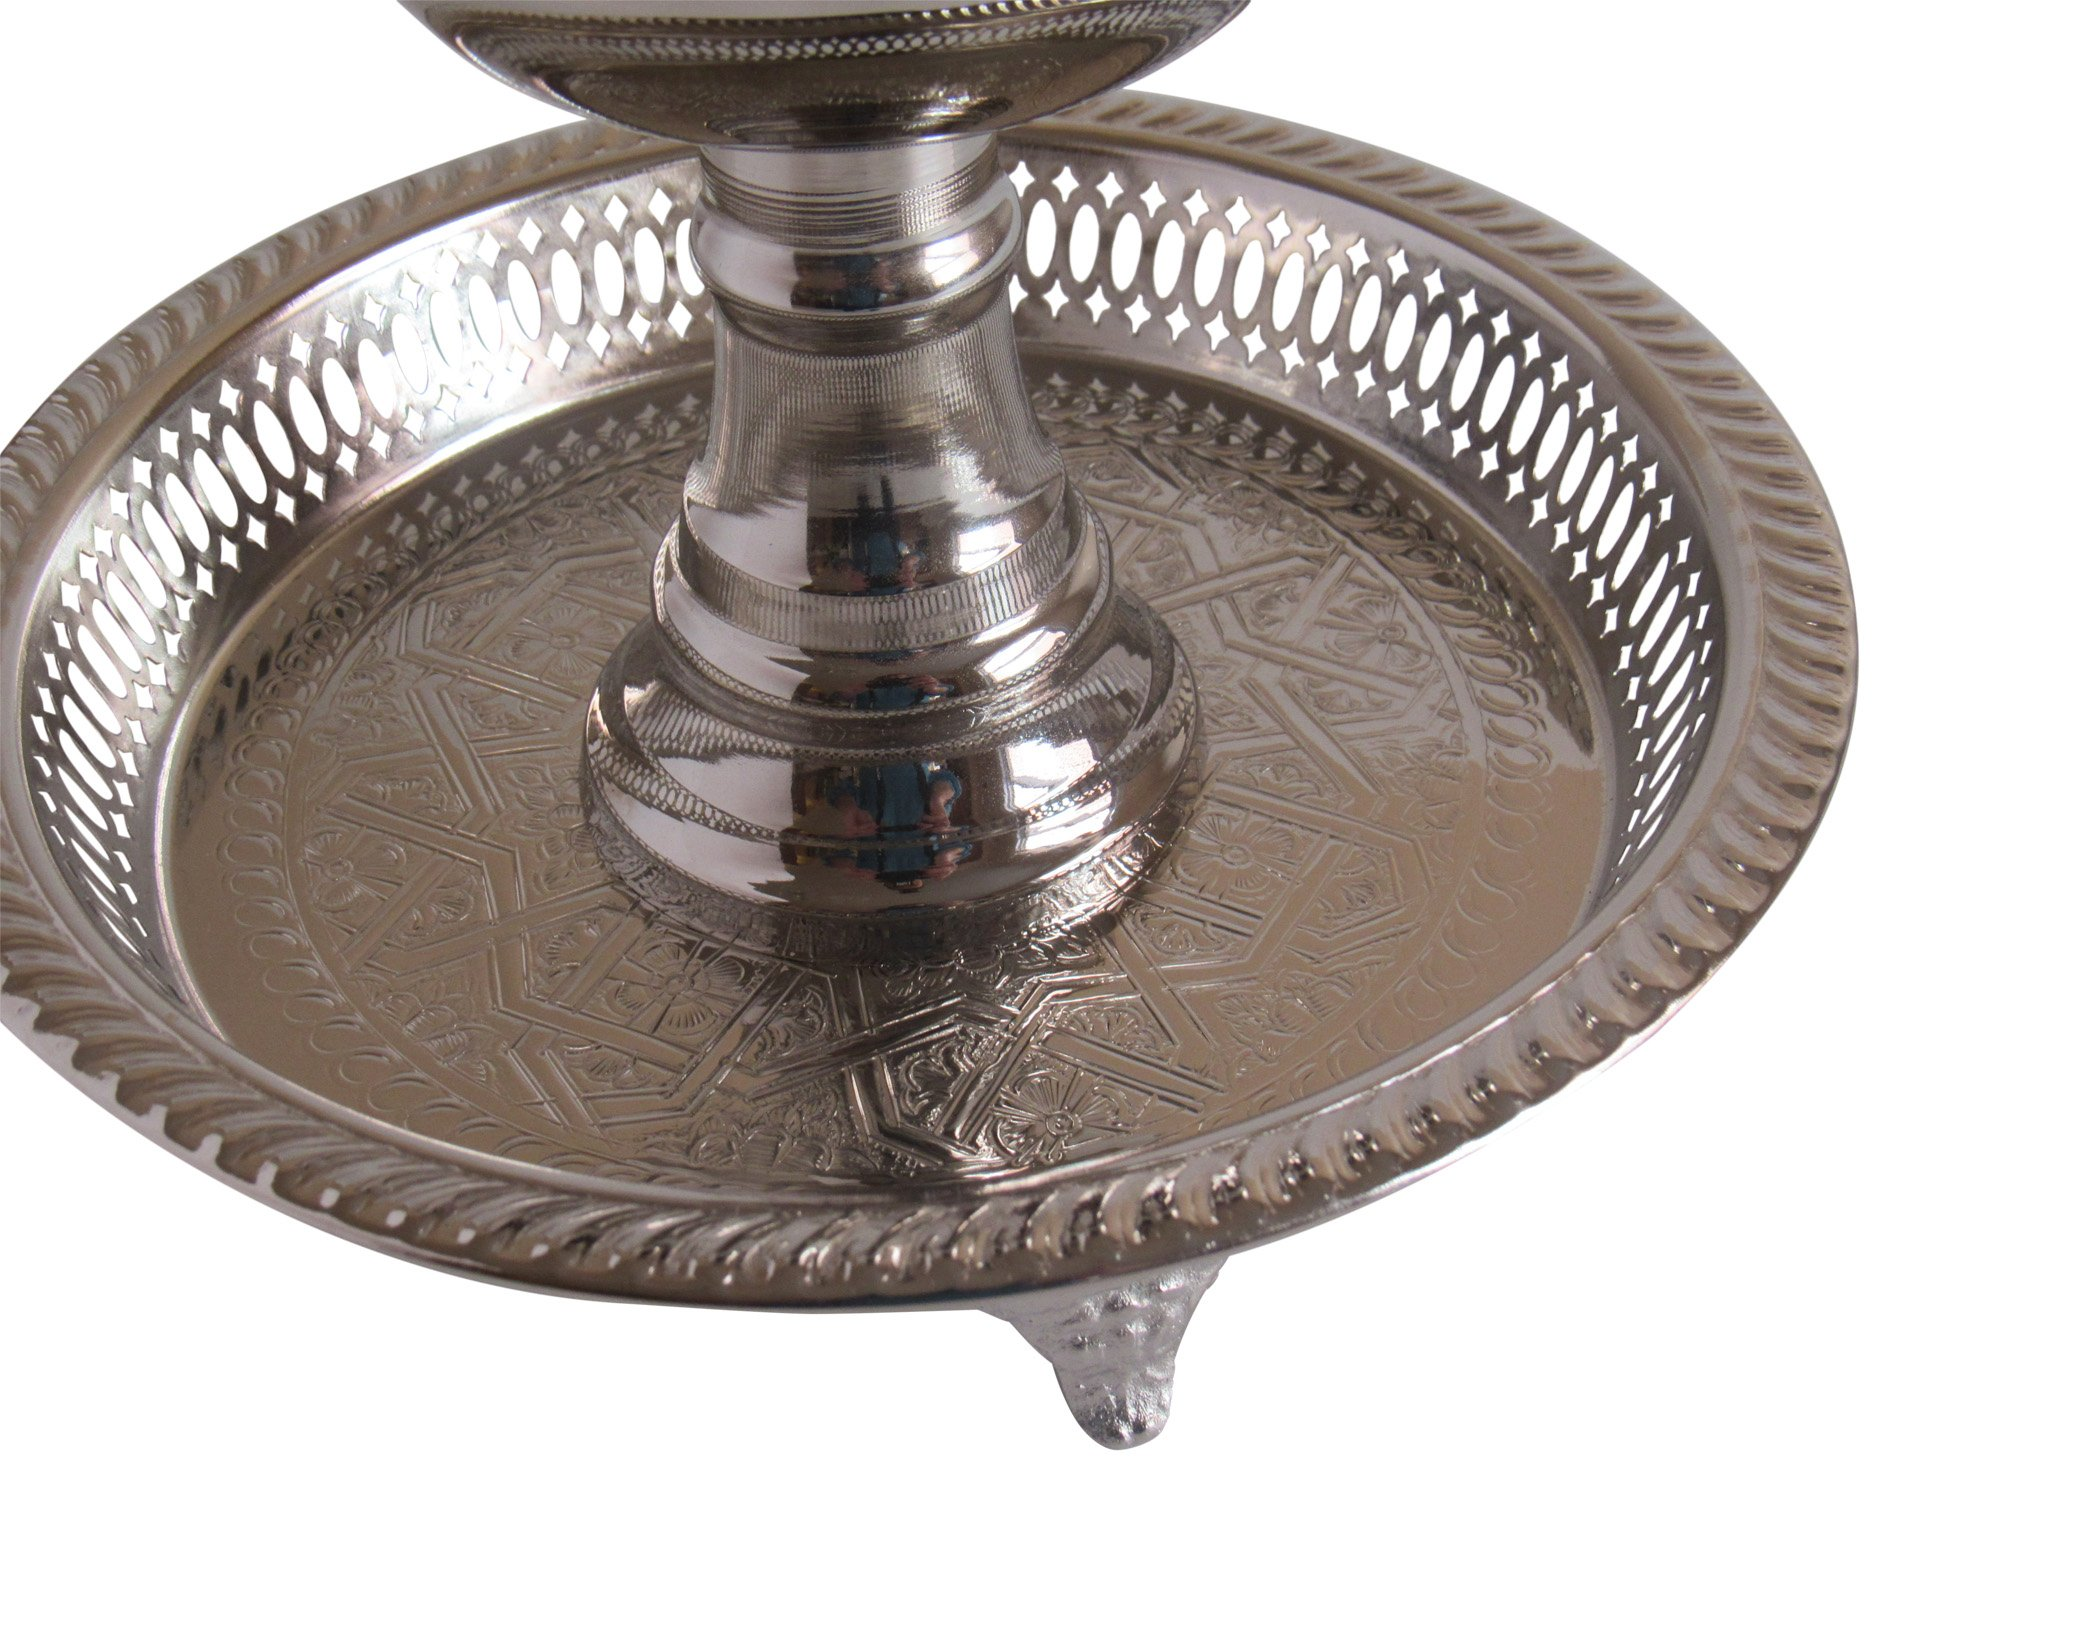 Vintage Styled Handmade Moroccan Silver Plated Engraved Incense Burner with Ash Catcher, Bring Home a Beautifully Functional Near East Tradition, 11x10'' by Handmade Moroccan Teapot (Image #2)